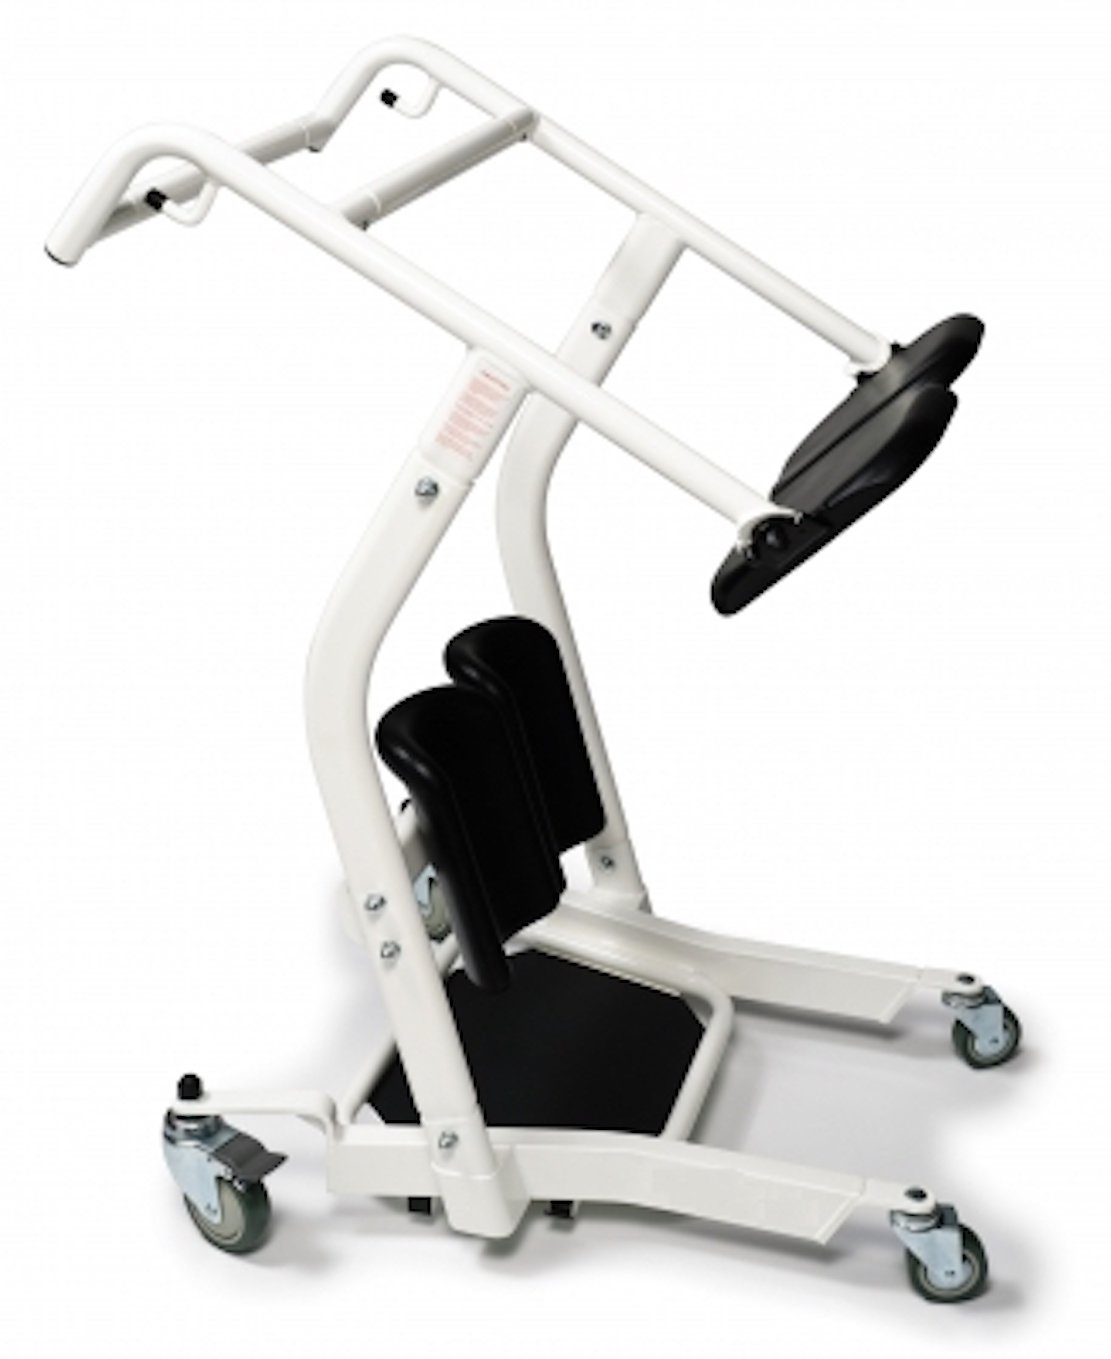 Pivit Stand Assist Patient Transport Lift 400 lbs Safe Working Load - Ideal for Transferring Patients to and from Wheelchair or Bed - Affordable Alternative to Battery-Powered Stand Assists